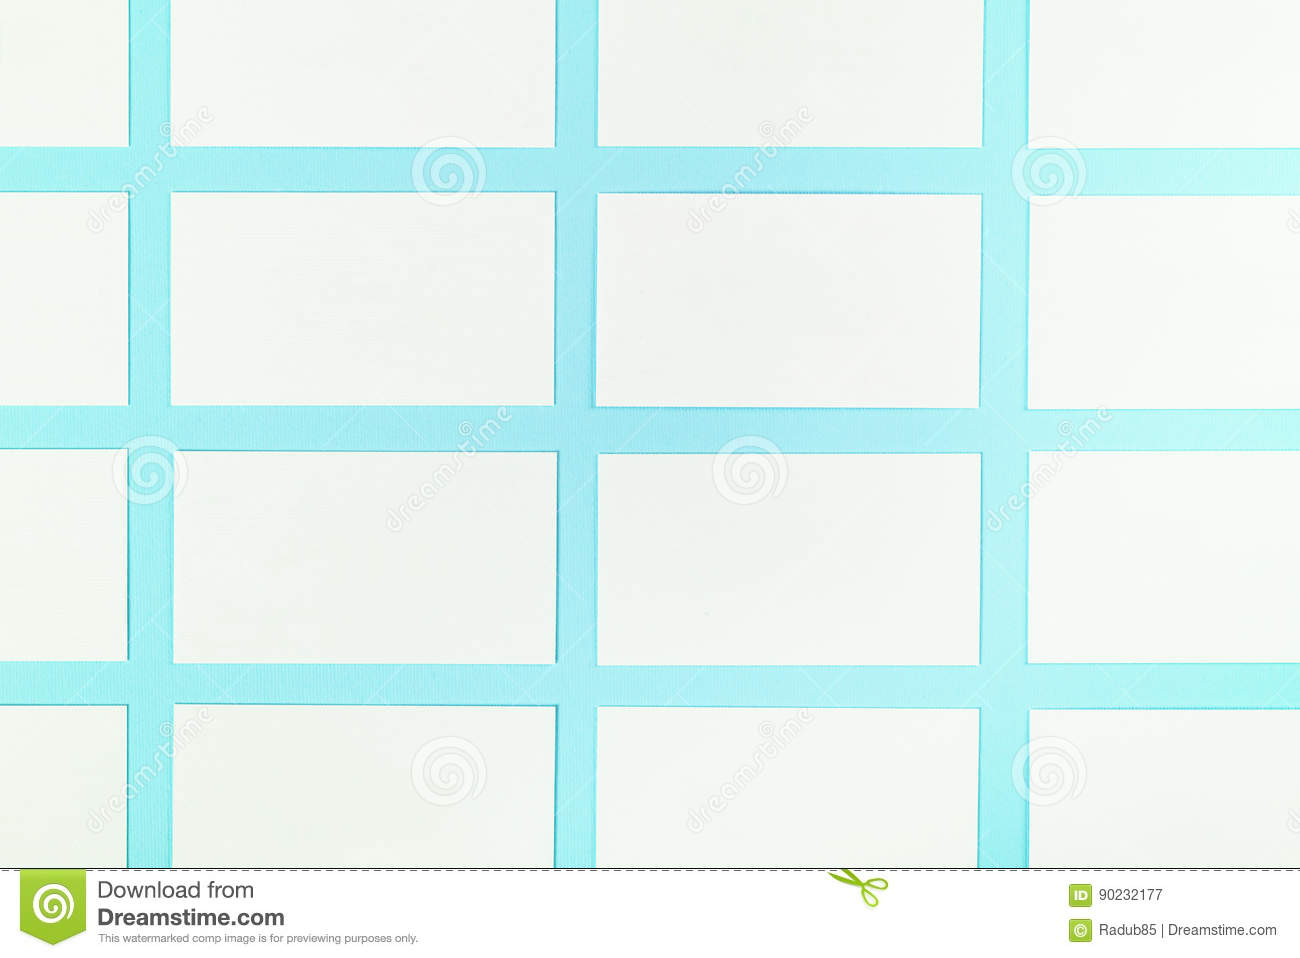 White blank business cards on blue background with paper texture download white blank business cards on blue background with paper texture stock image image of reheart Image collections